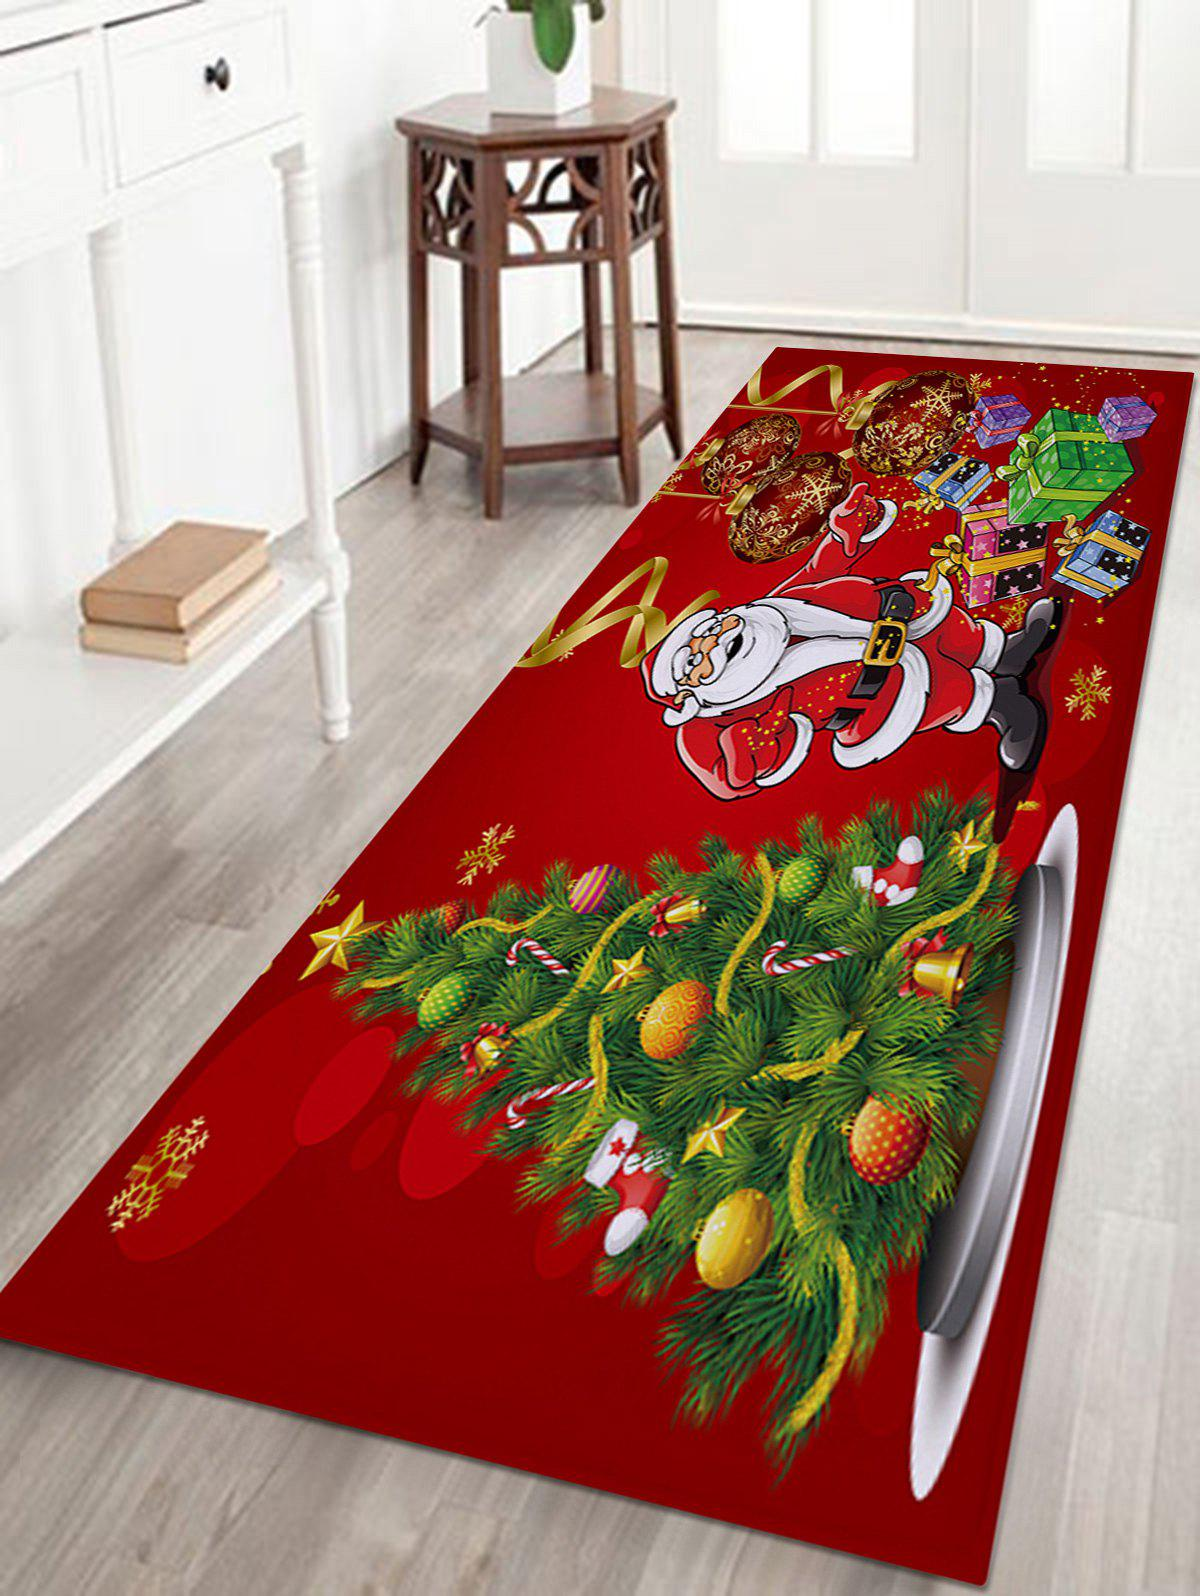 Christmas Tree Santa Baubles Pattern Indoor Outdoor Area Rug - COLORMIX W16 INCH * L47 INCH